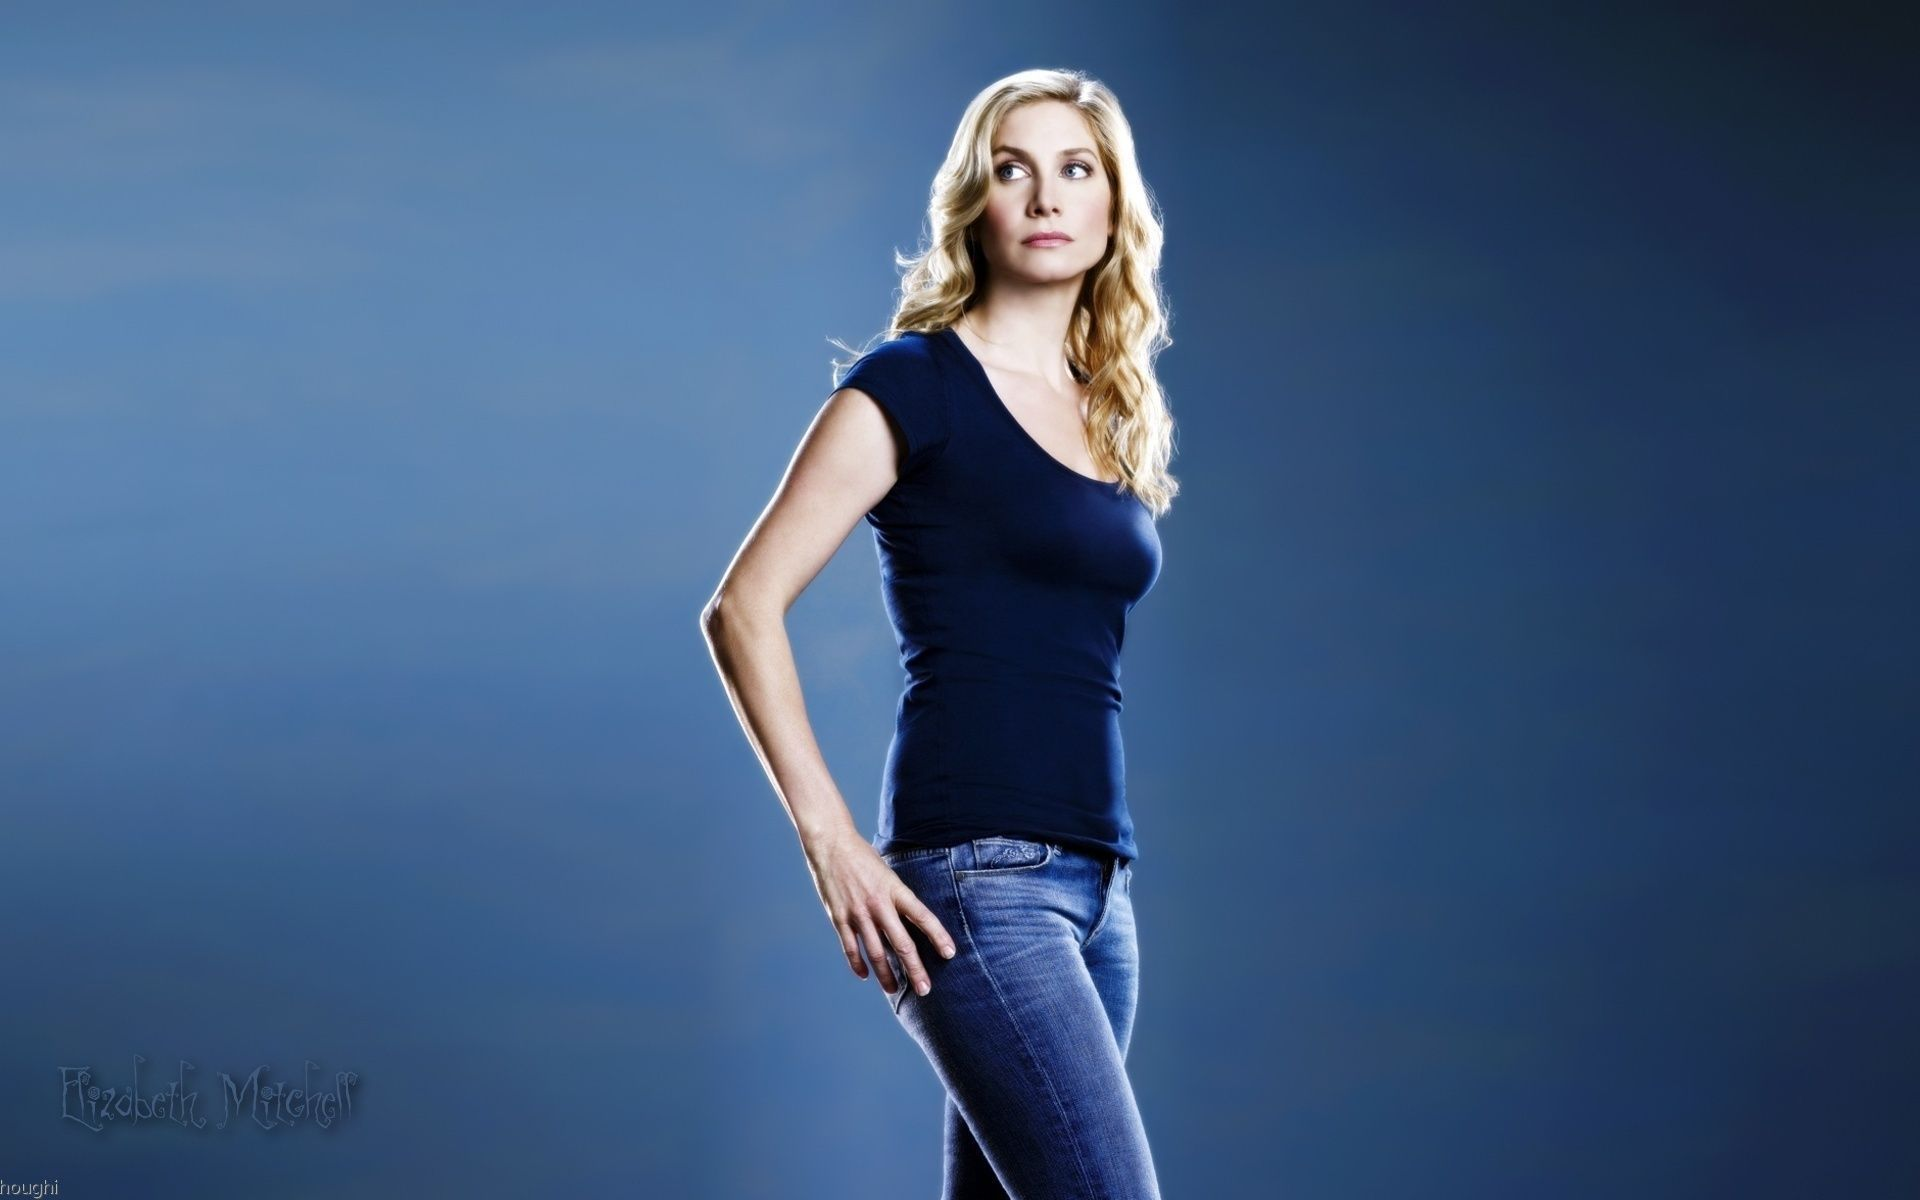 American Beautiful Girl Hd Wallpaper Pictures Of Elizabeth Mitchell Pictures Of Celebrities